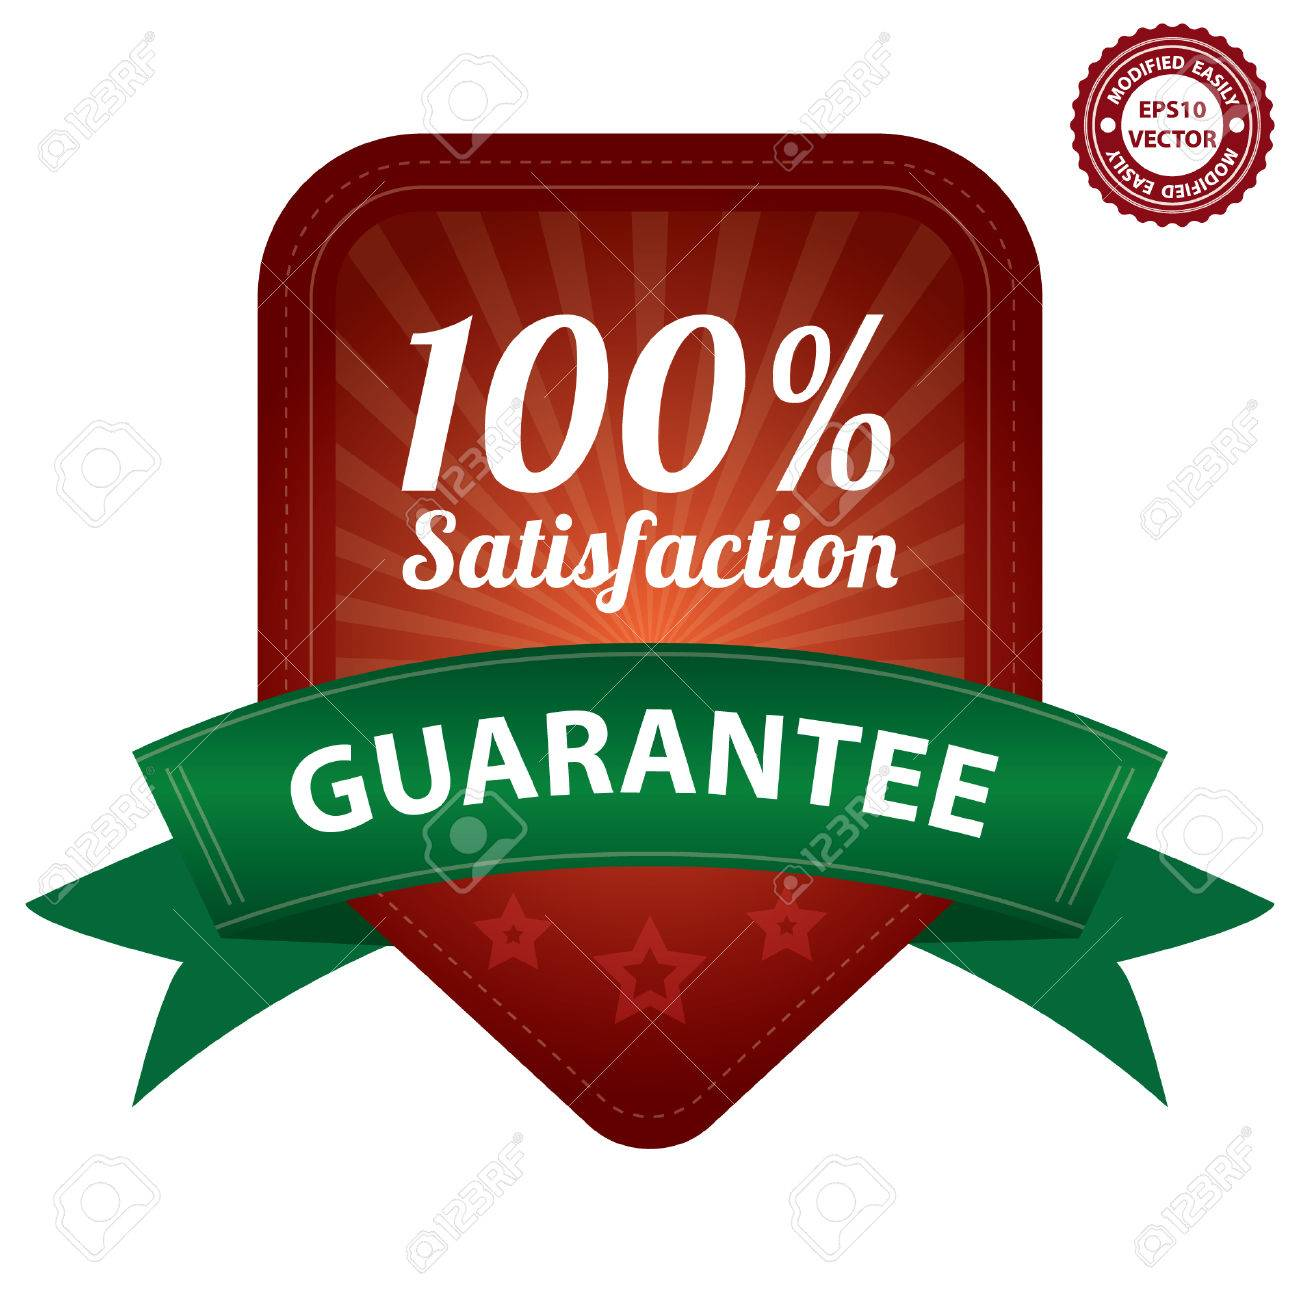 Vector, Red 100 Percent Satisfaction Guarantee Sticker, Label, Stamp, Badge or Icon  forQuality Management Systems, Quality Assurance and Quality Control Concept Isolated on White Background Stock Vector - 24029177